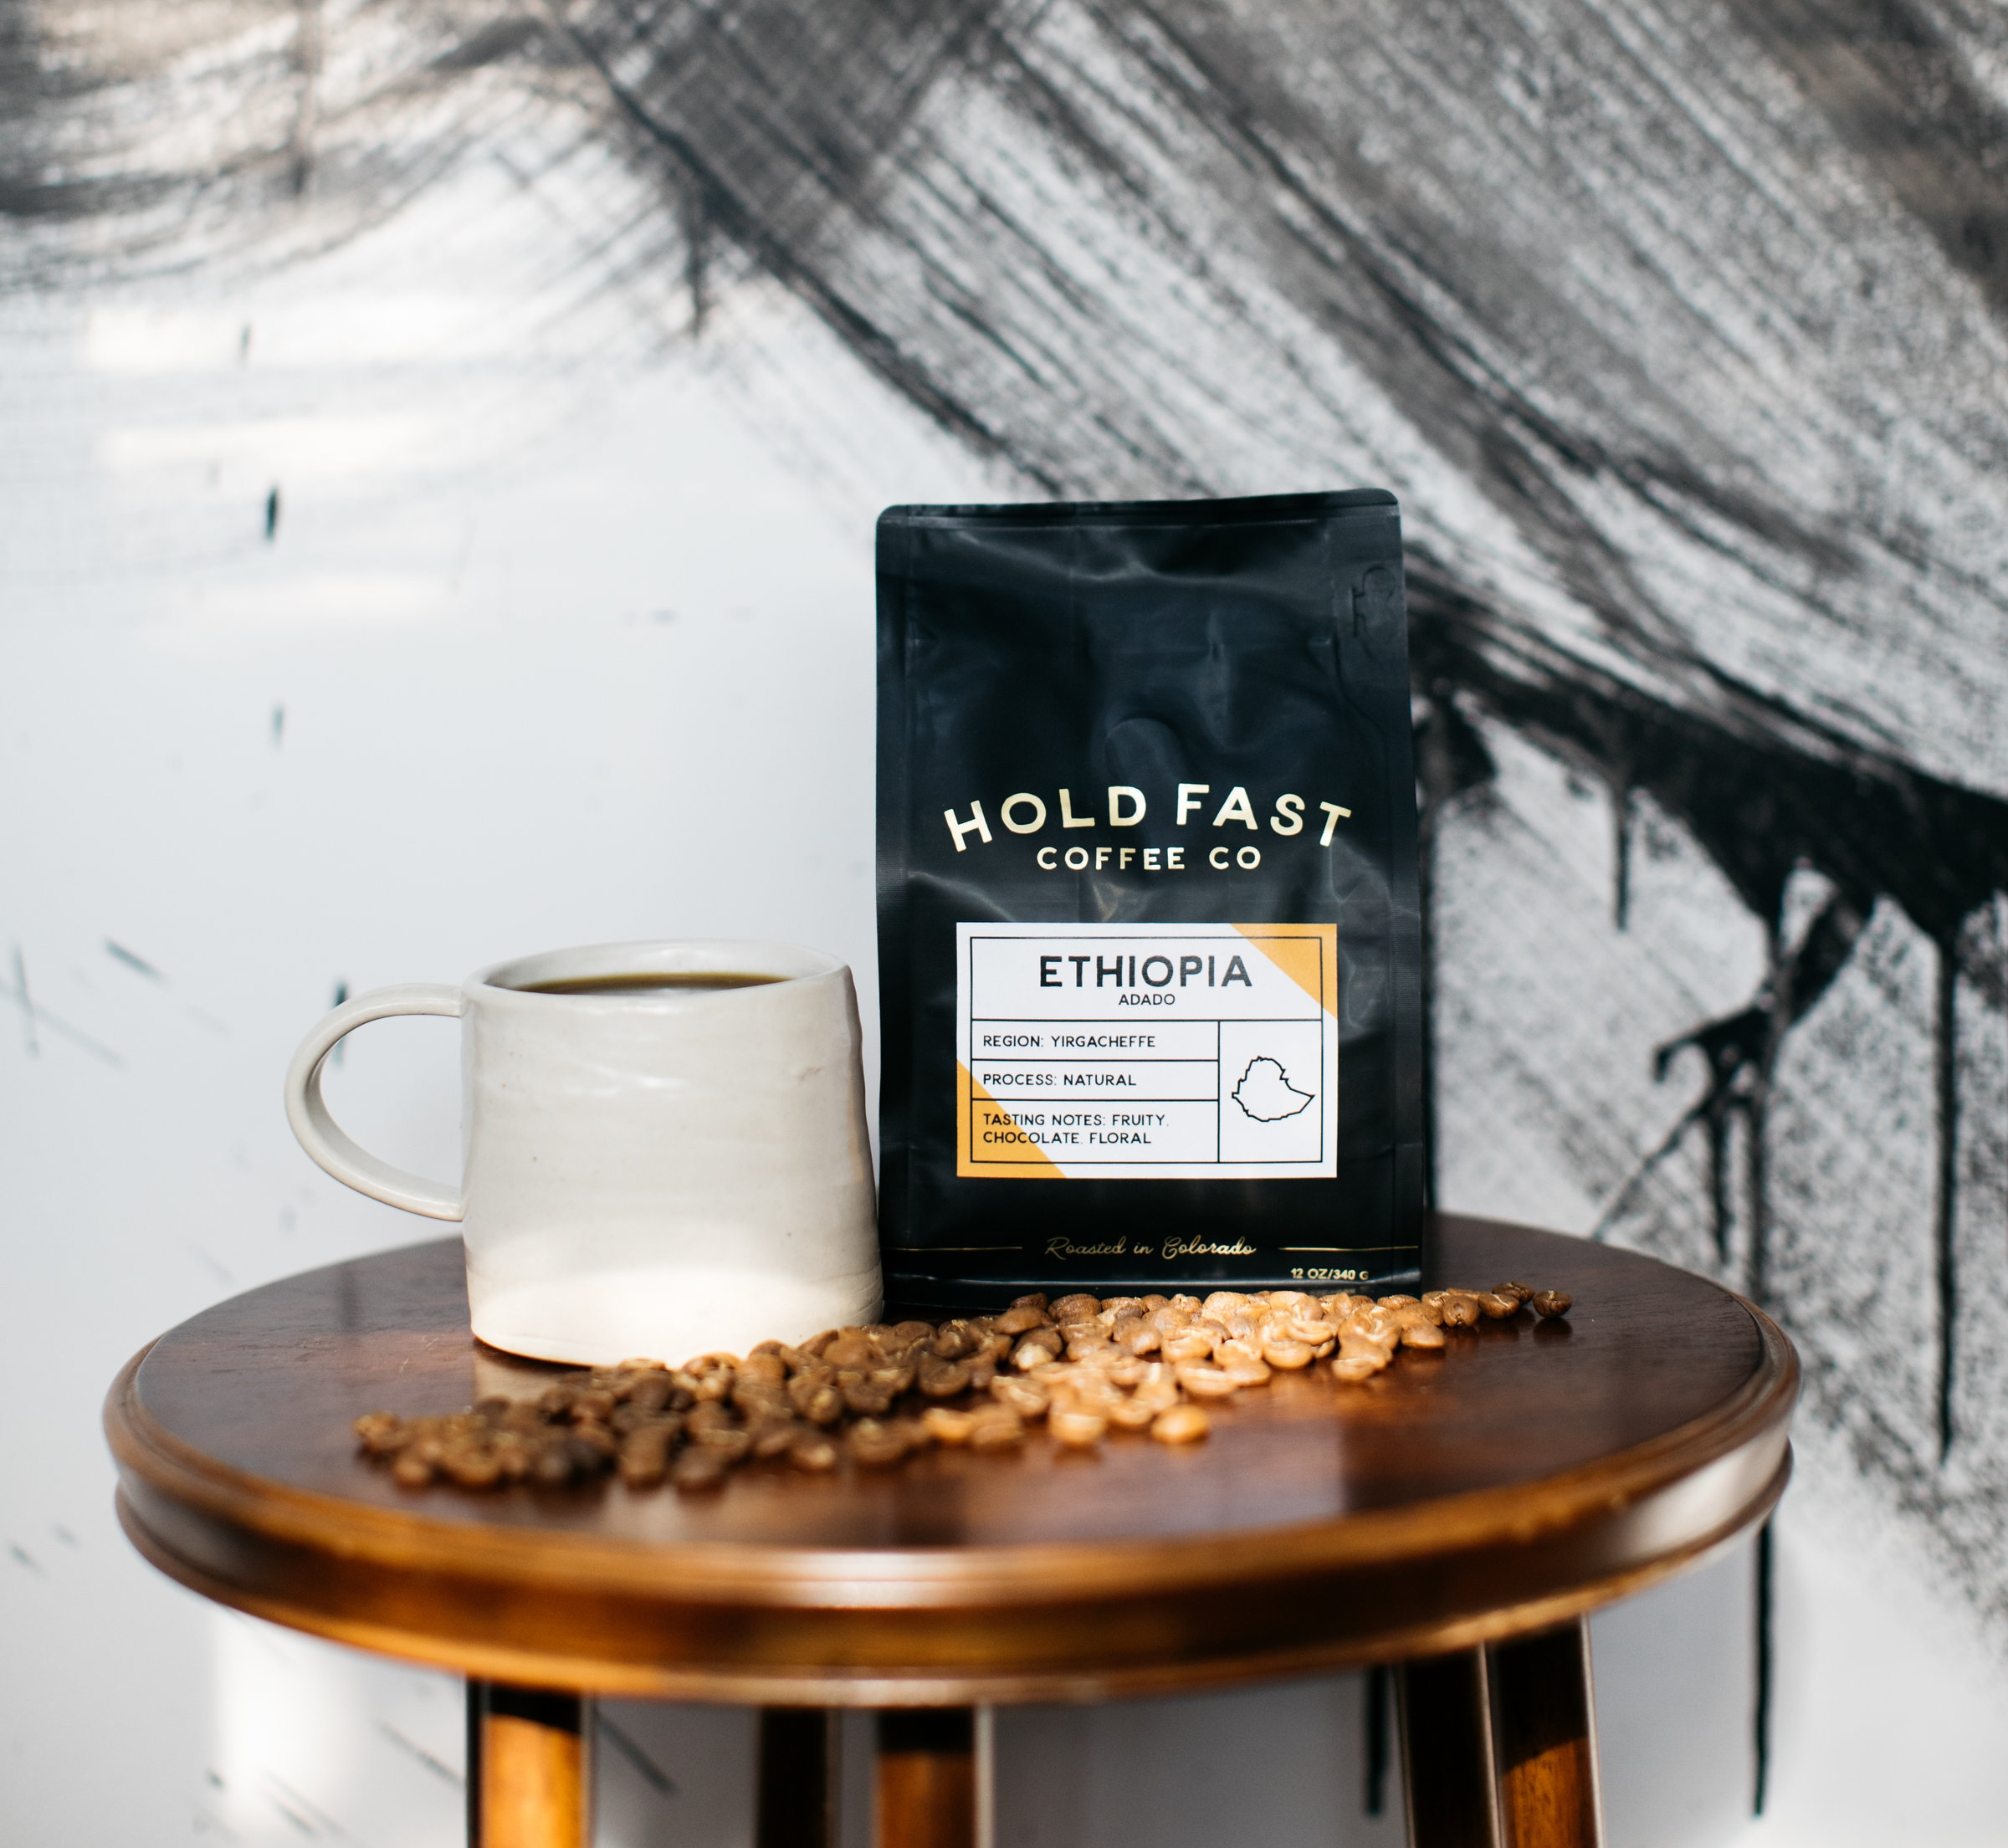 We Brew Great Coffee. - We love coffee. It's our passion, our focus, our inspiration. We serve coffee from our roastery, Hold Fast Coffee Co, so that we can ensure that every shot is perfectly dialed in and every drink is just like you like it.